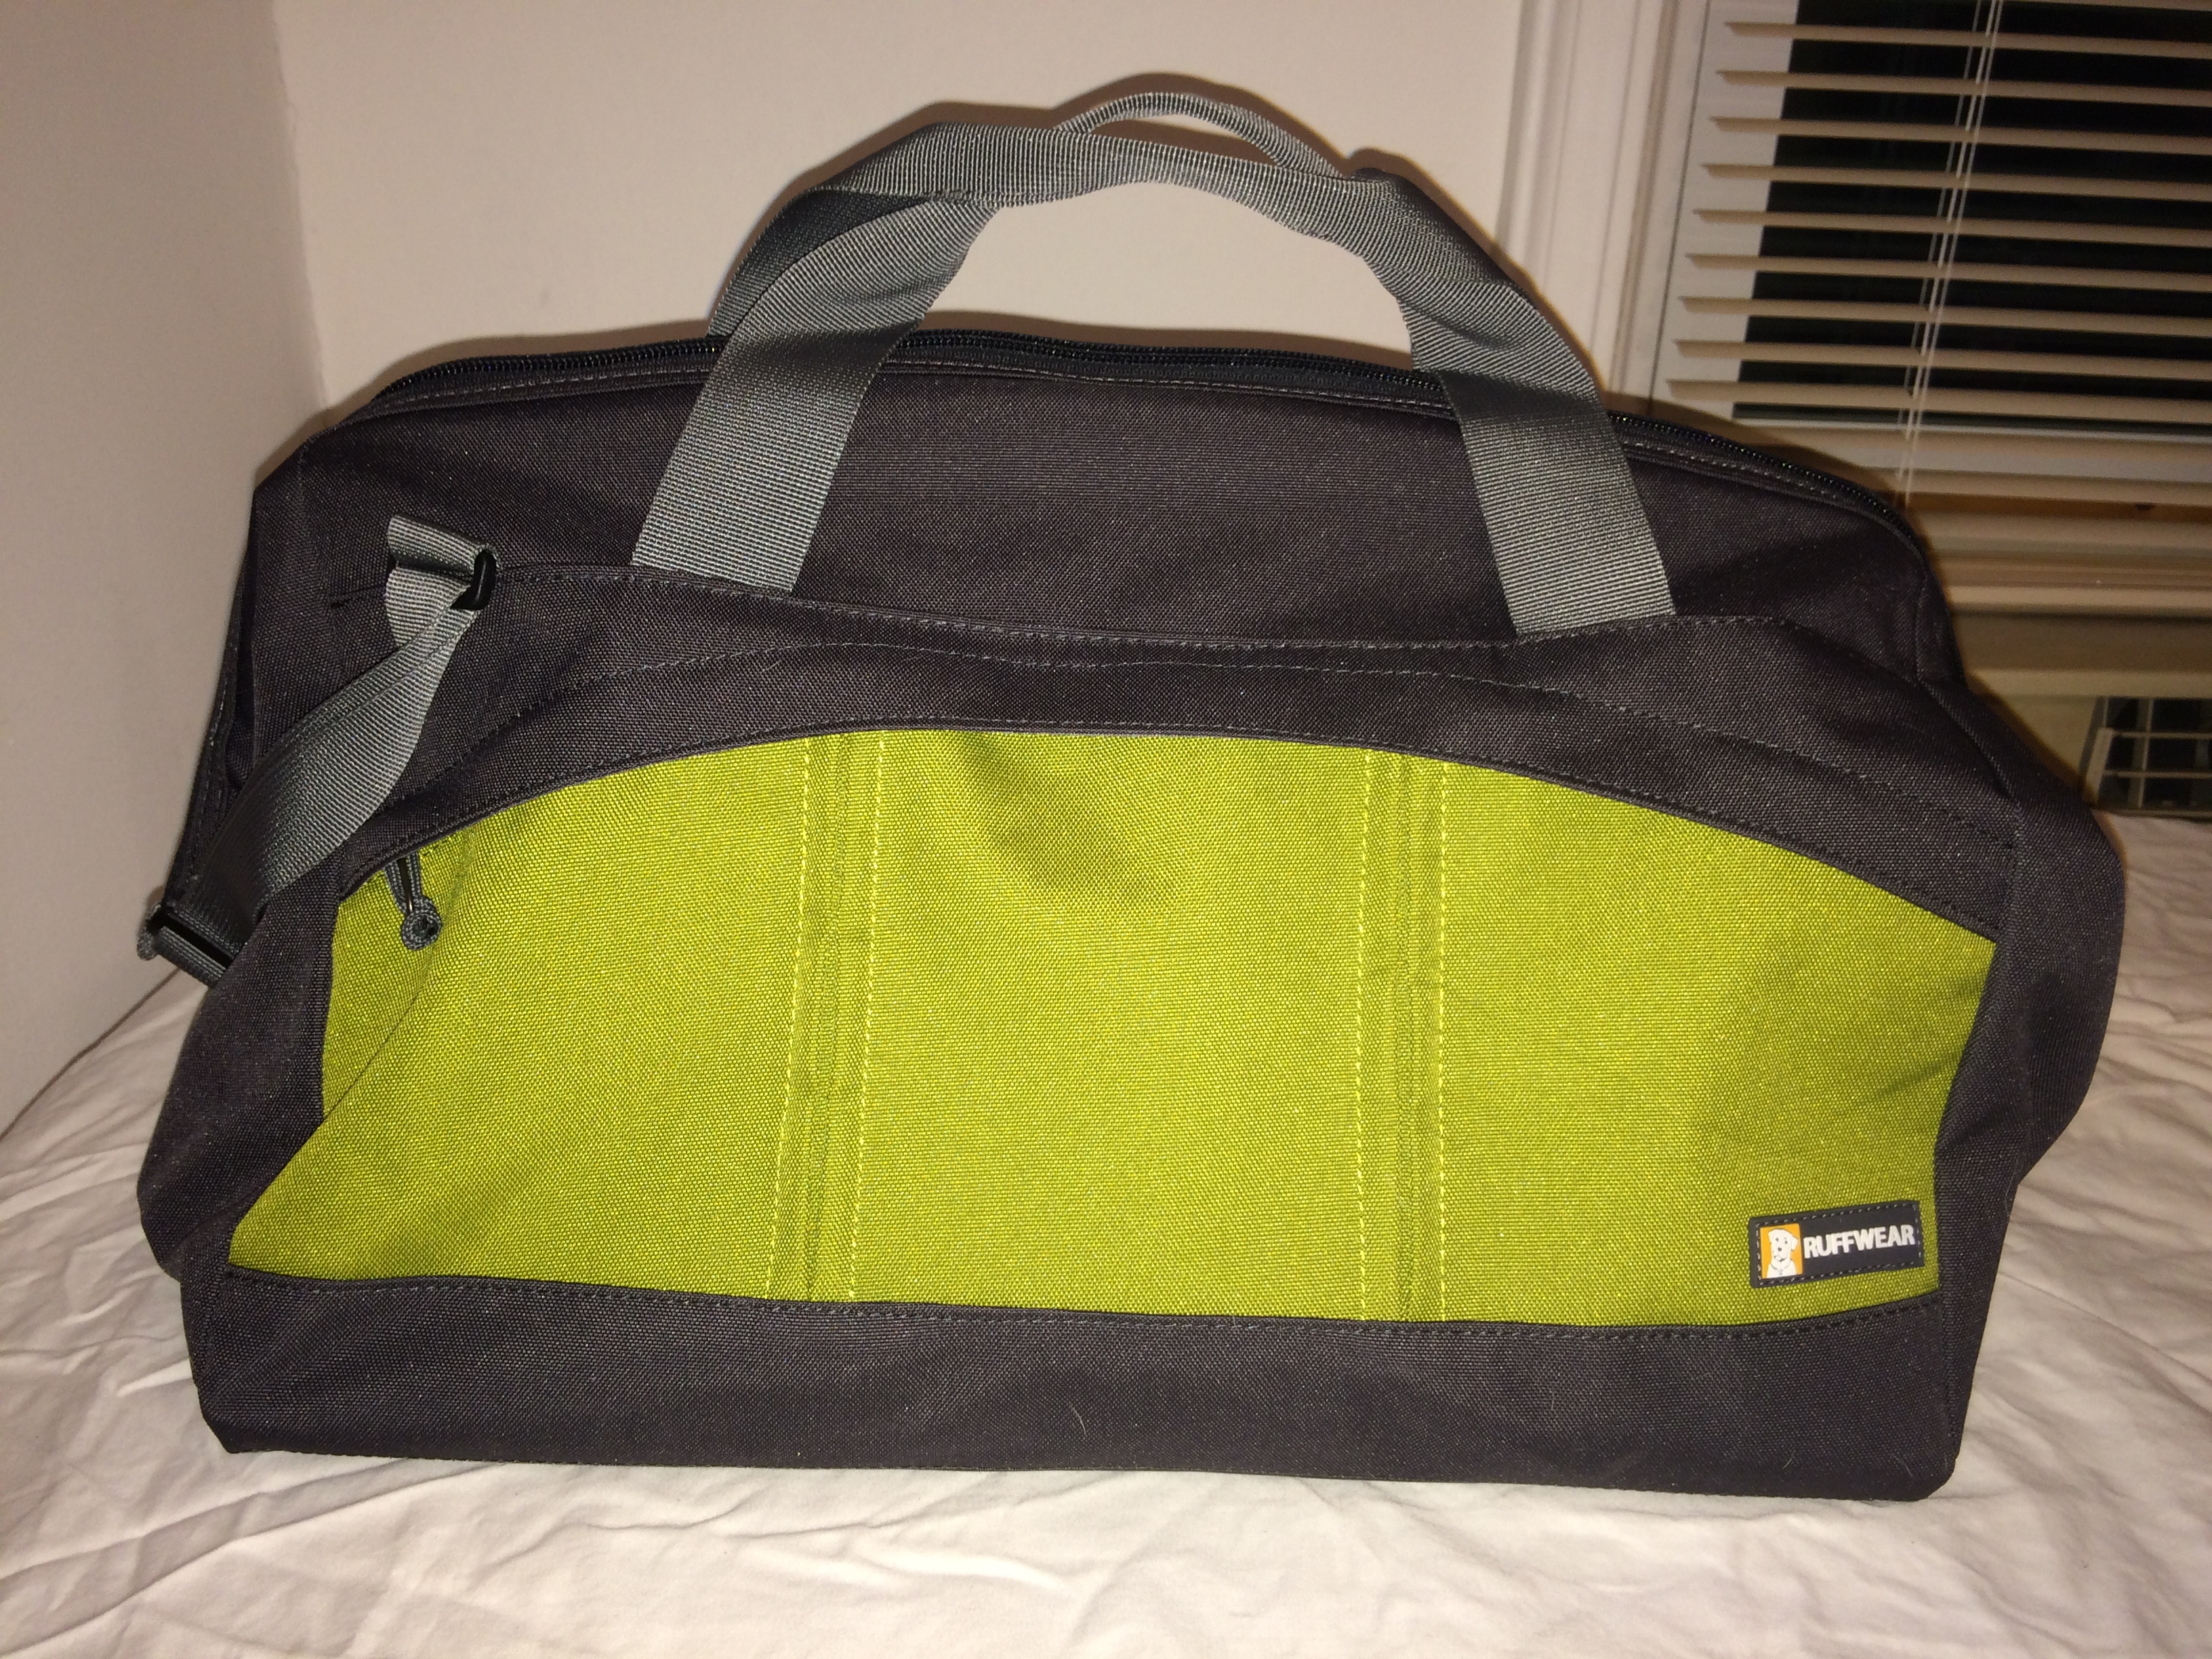 Product Review – Ruffwear Haul Bag